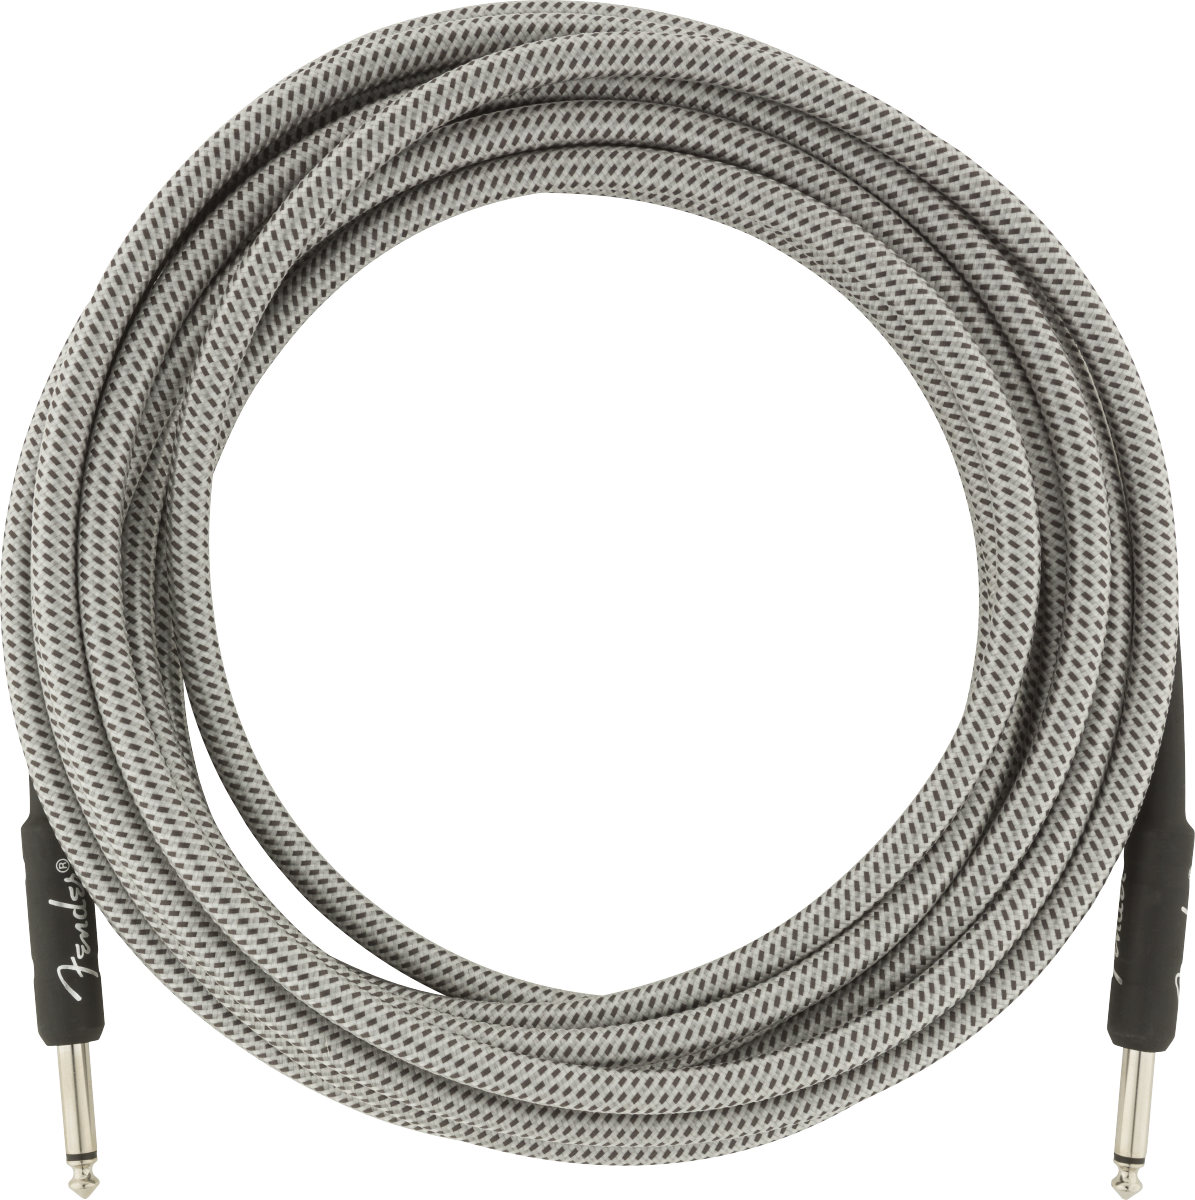 Fender Professional Series Instrument Cable, 18.6', White Tweed